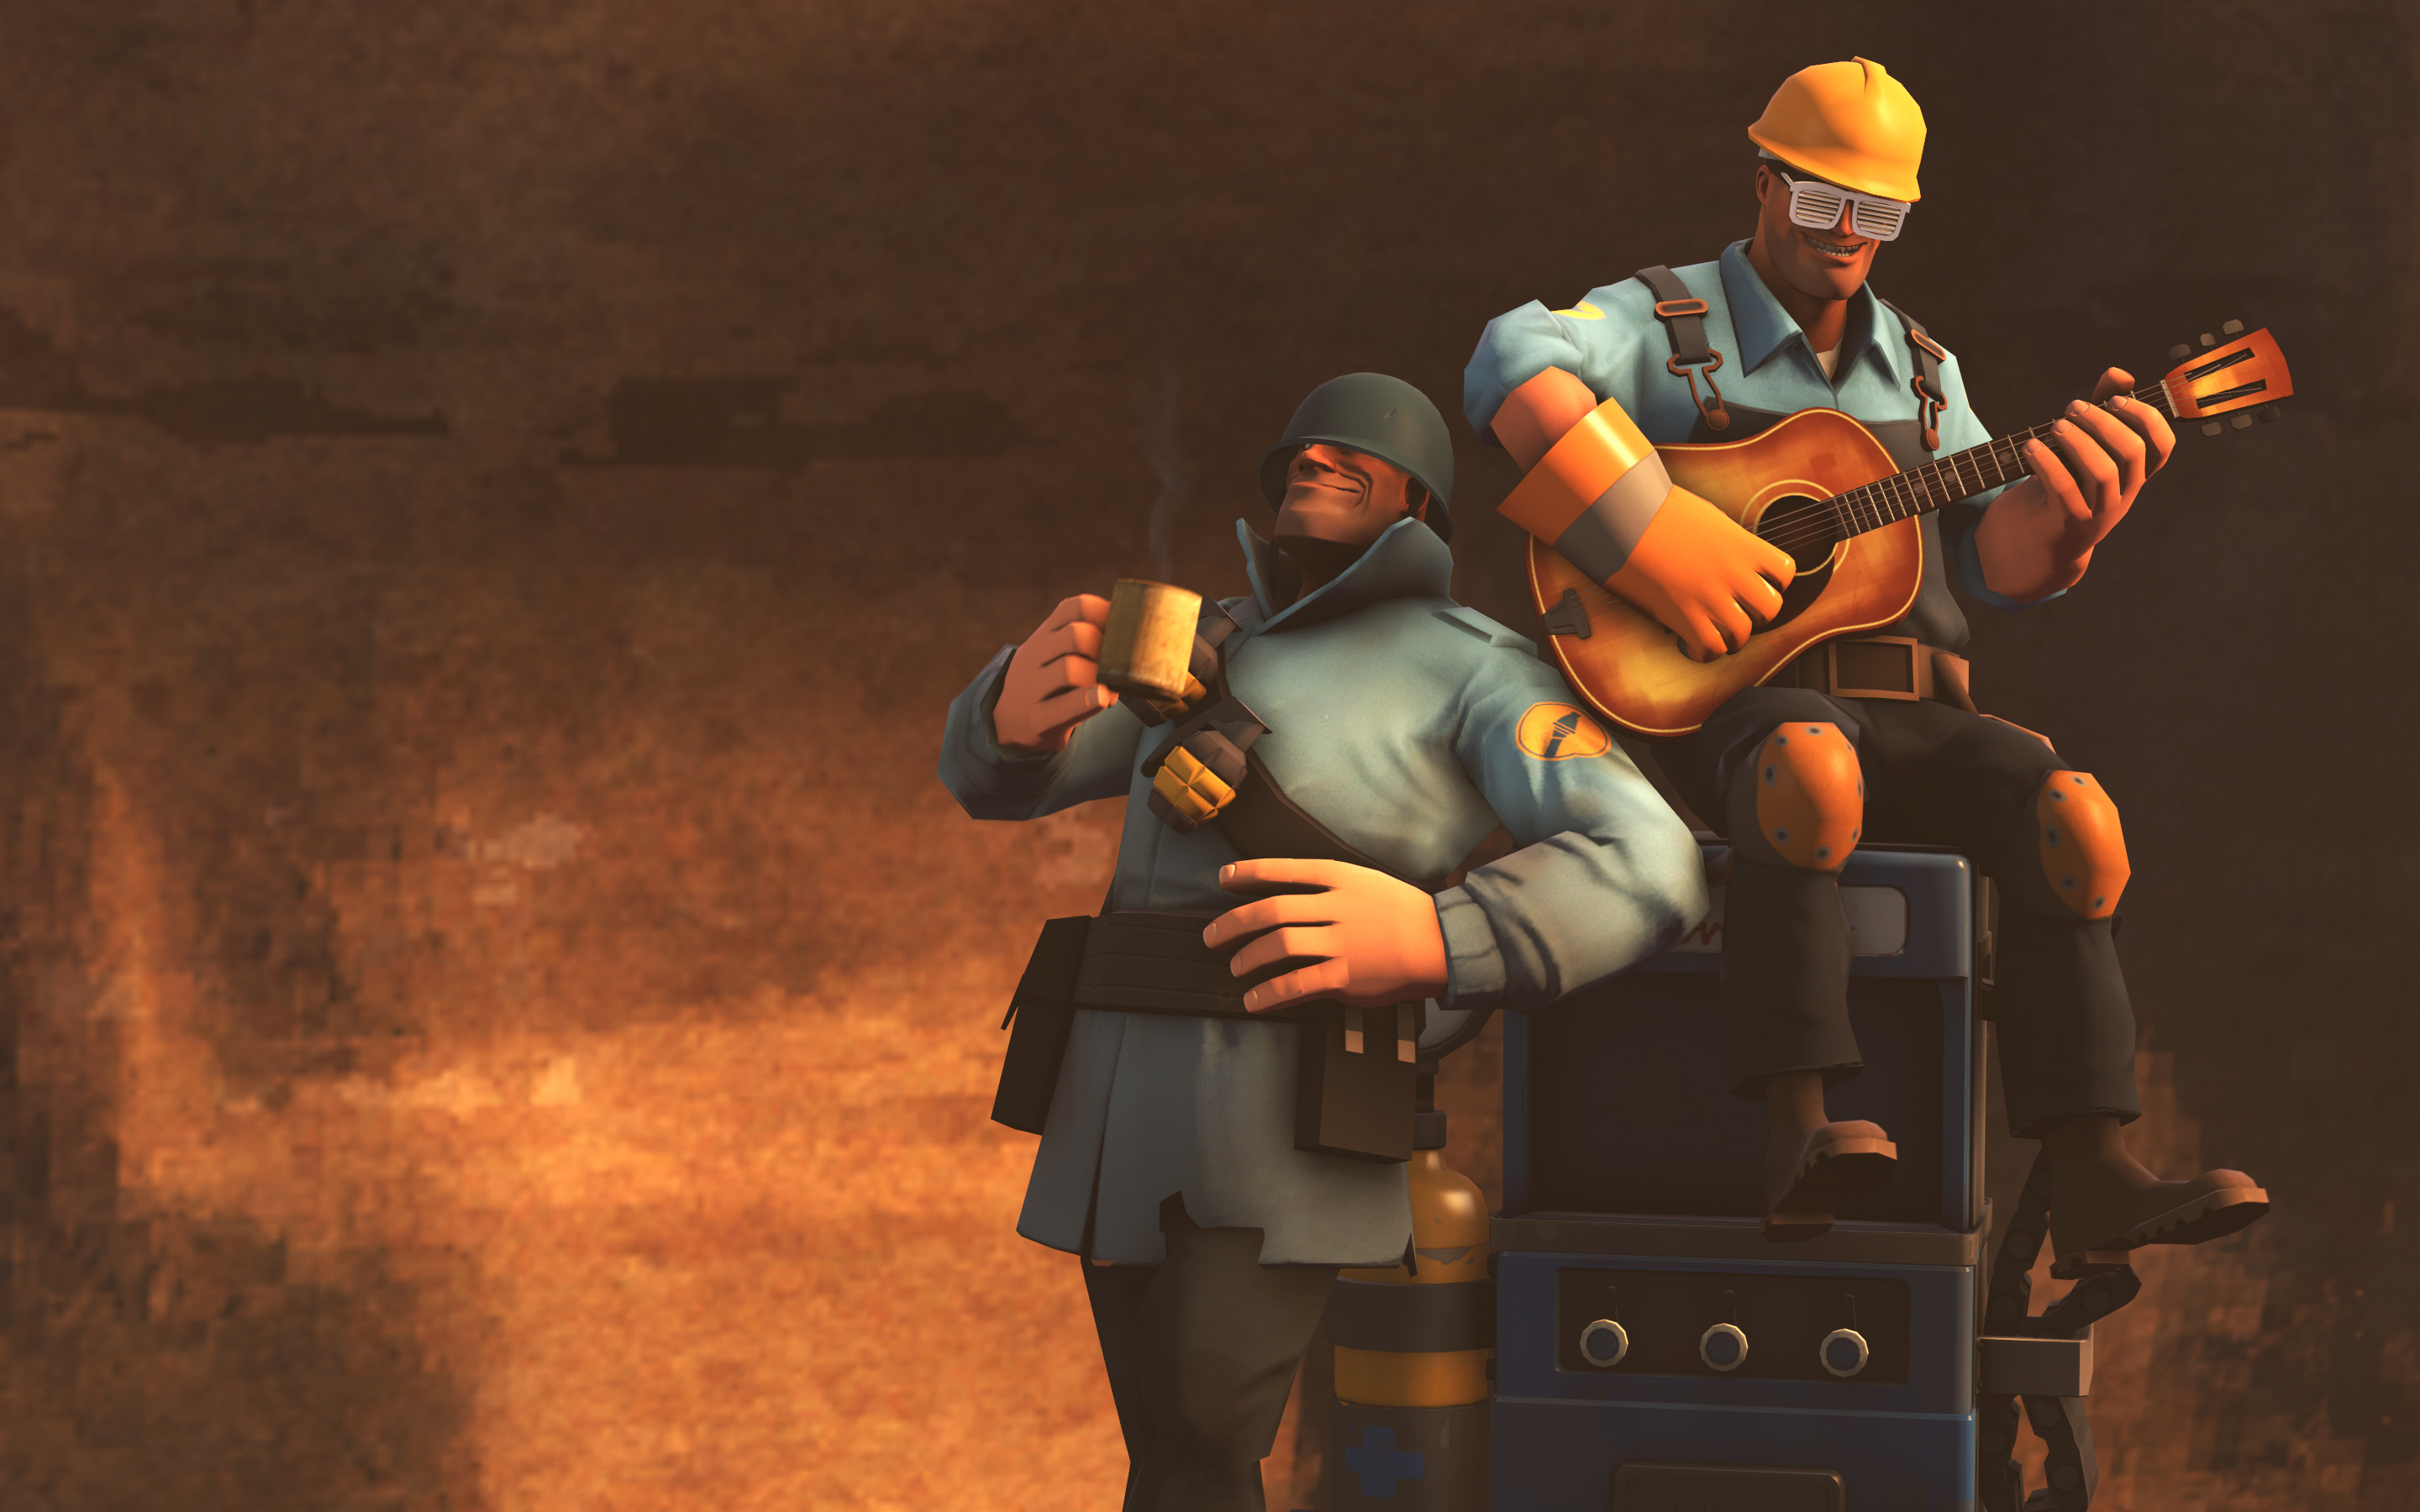 2880x1800 Team fortress 2 wallpaper soldier and engie chill wallpapers.